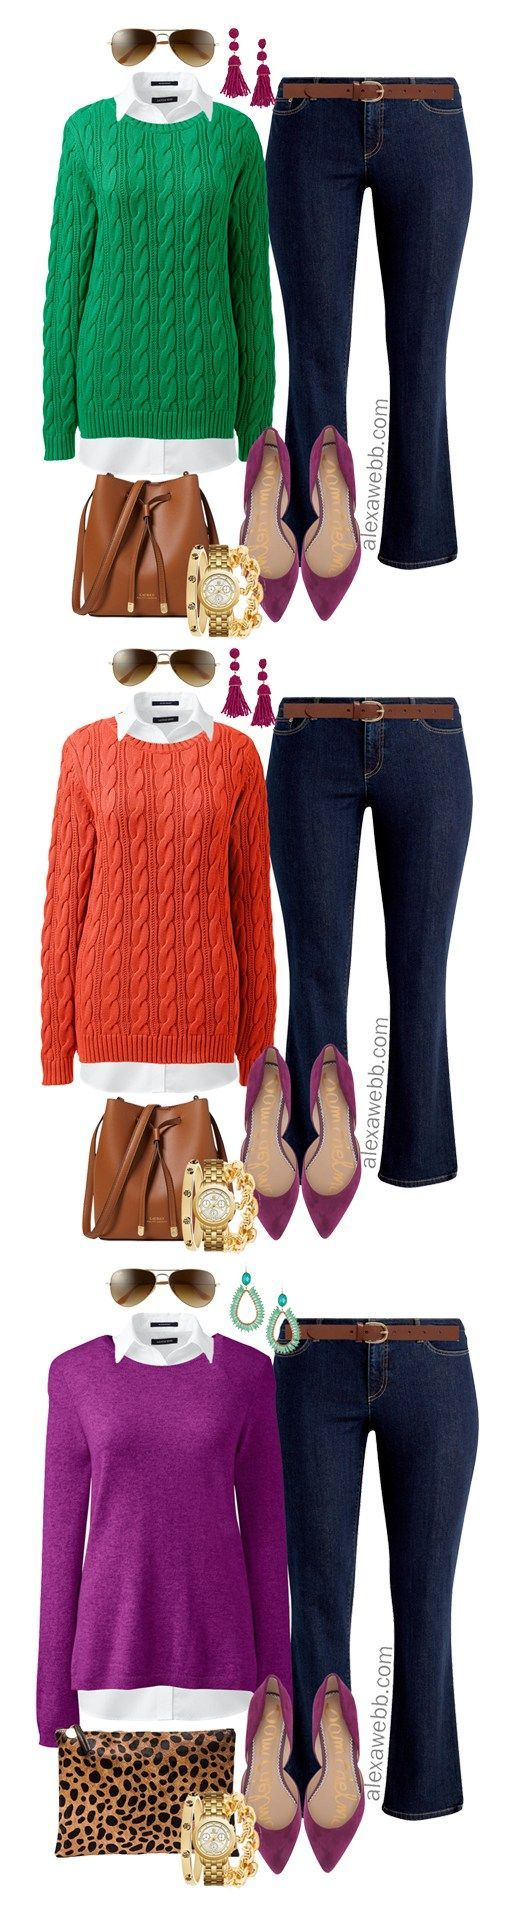 Plus Size Bright Sweater Outfit Ideas - Alexa Webb #sweateroutfits